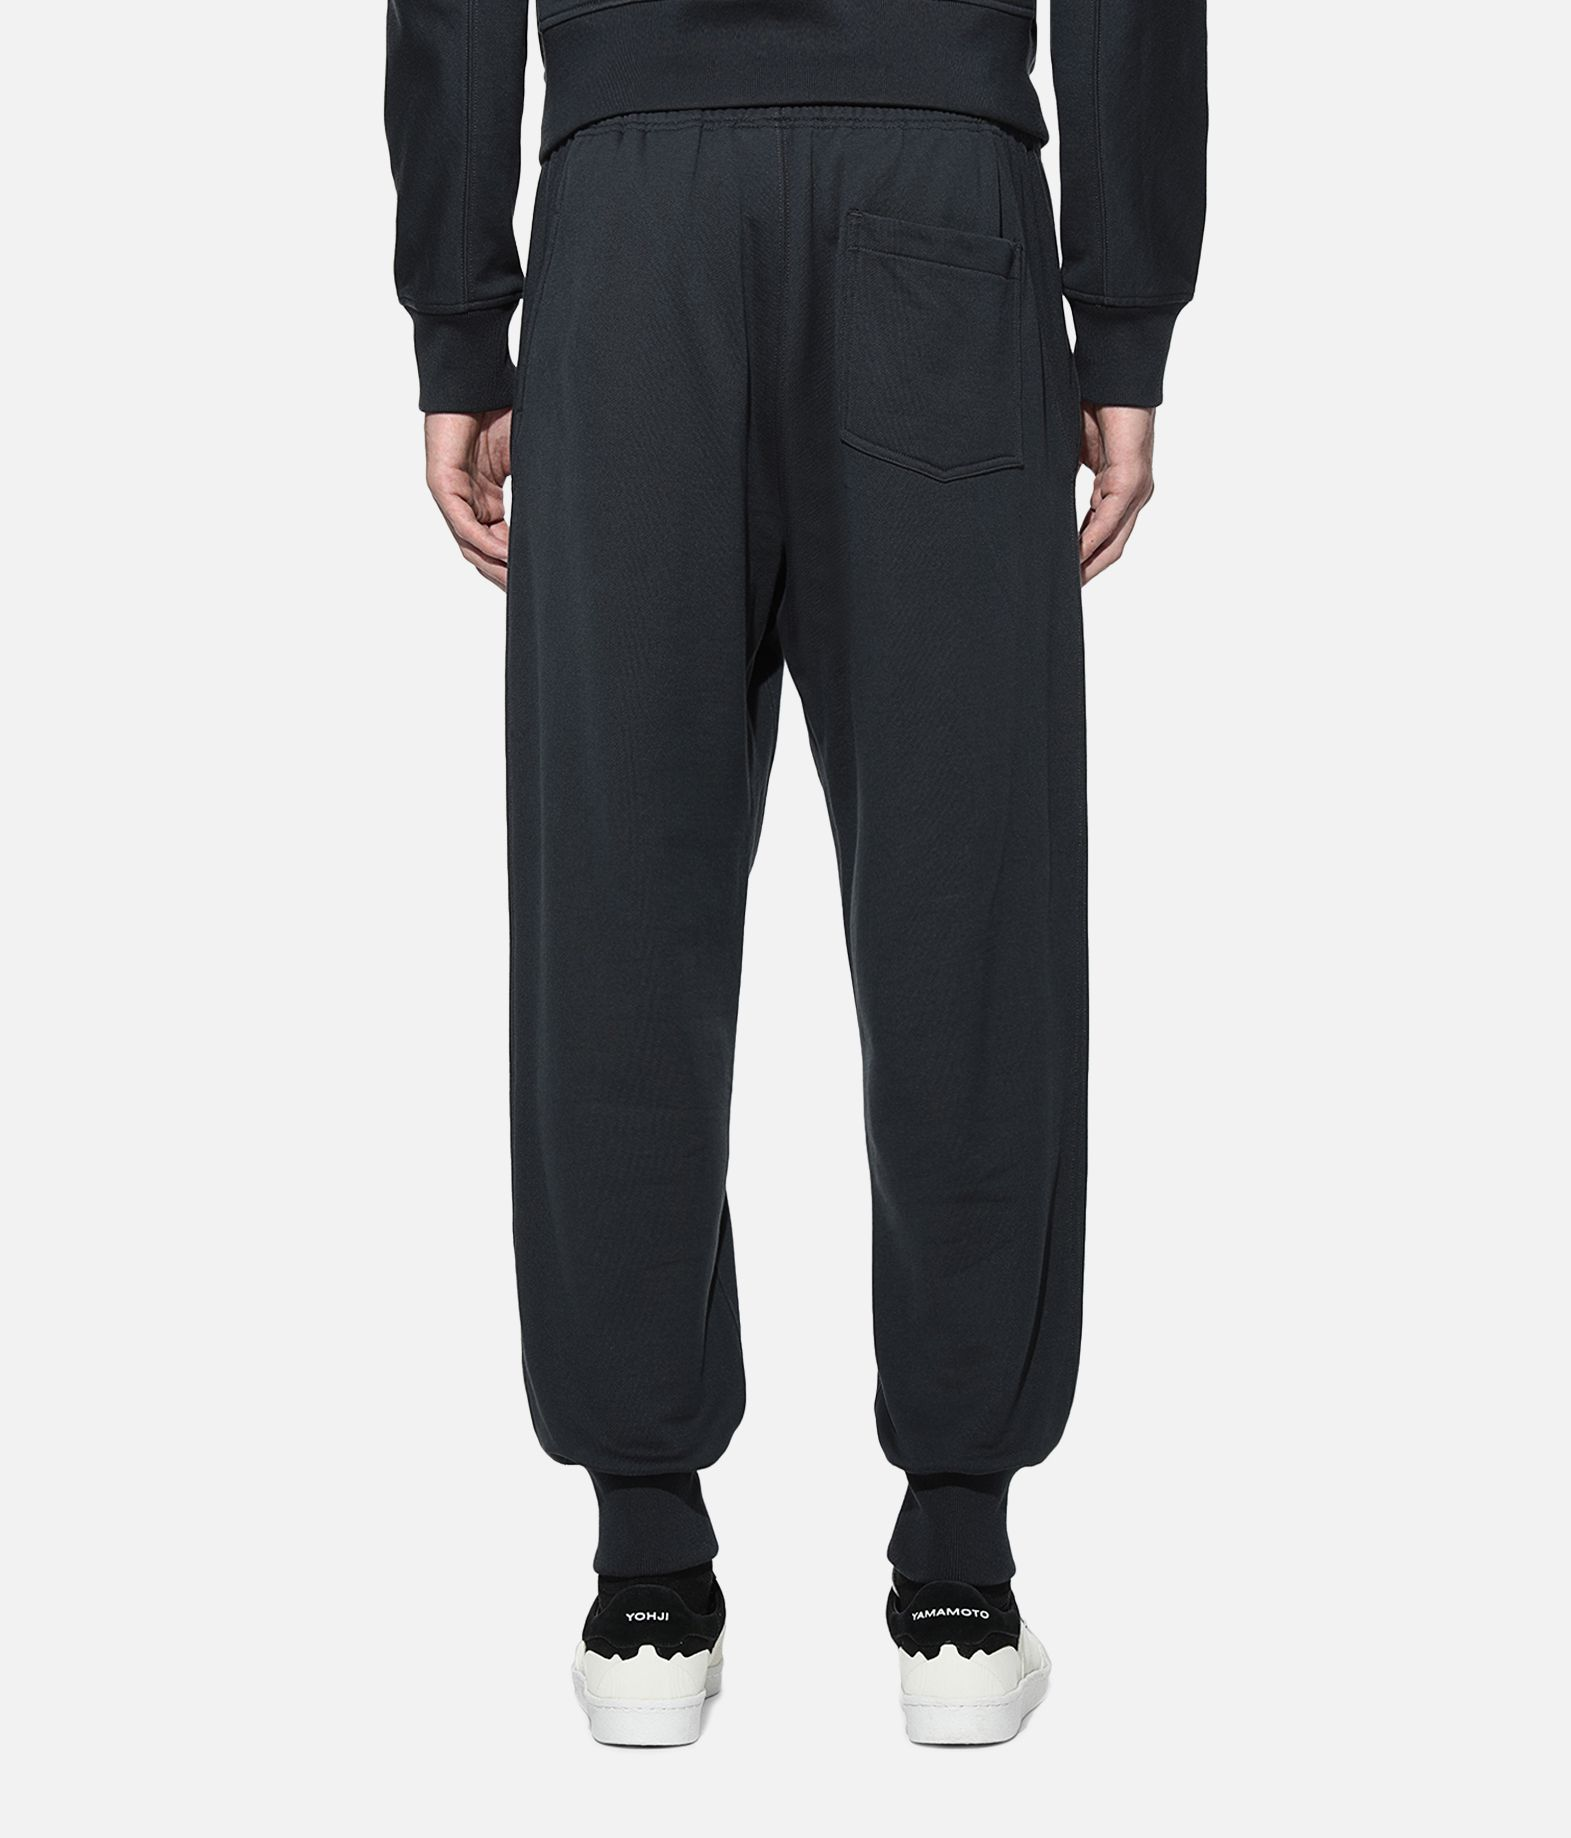 Y-3 Y-3 Classic Cuffed Pants Sweatpants Man d